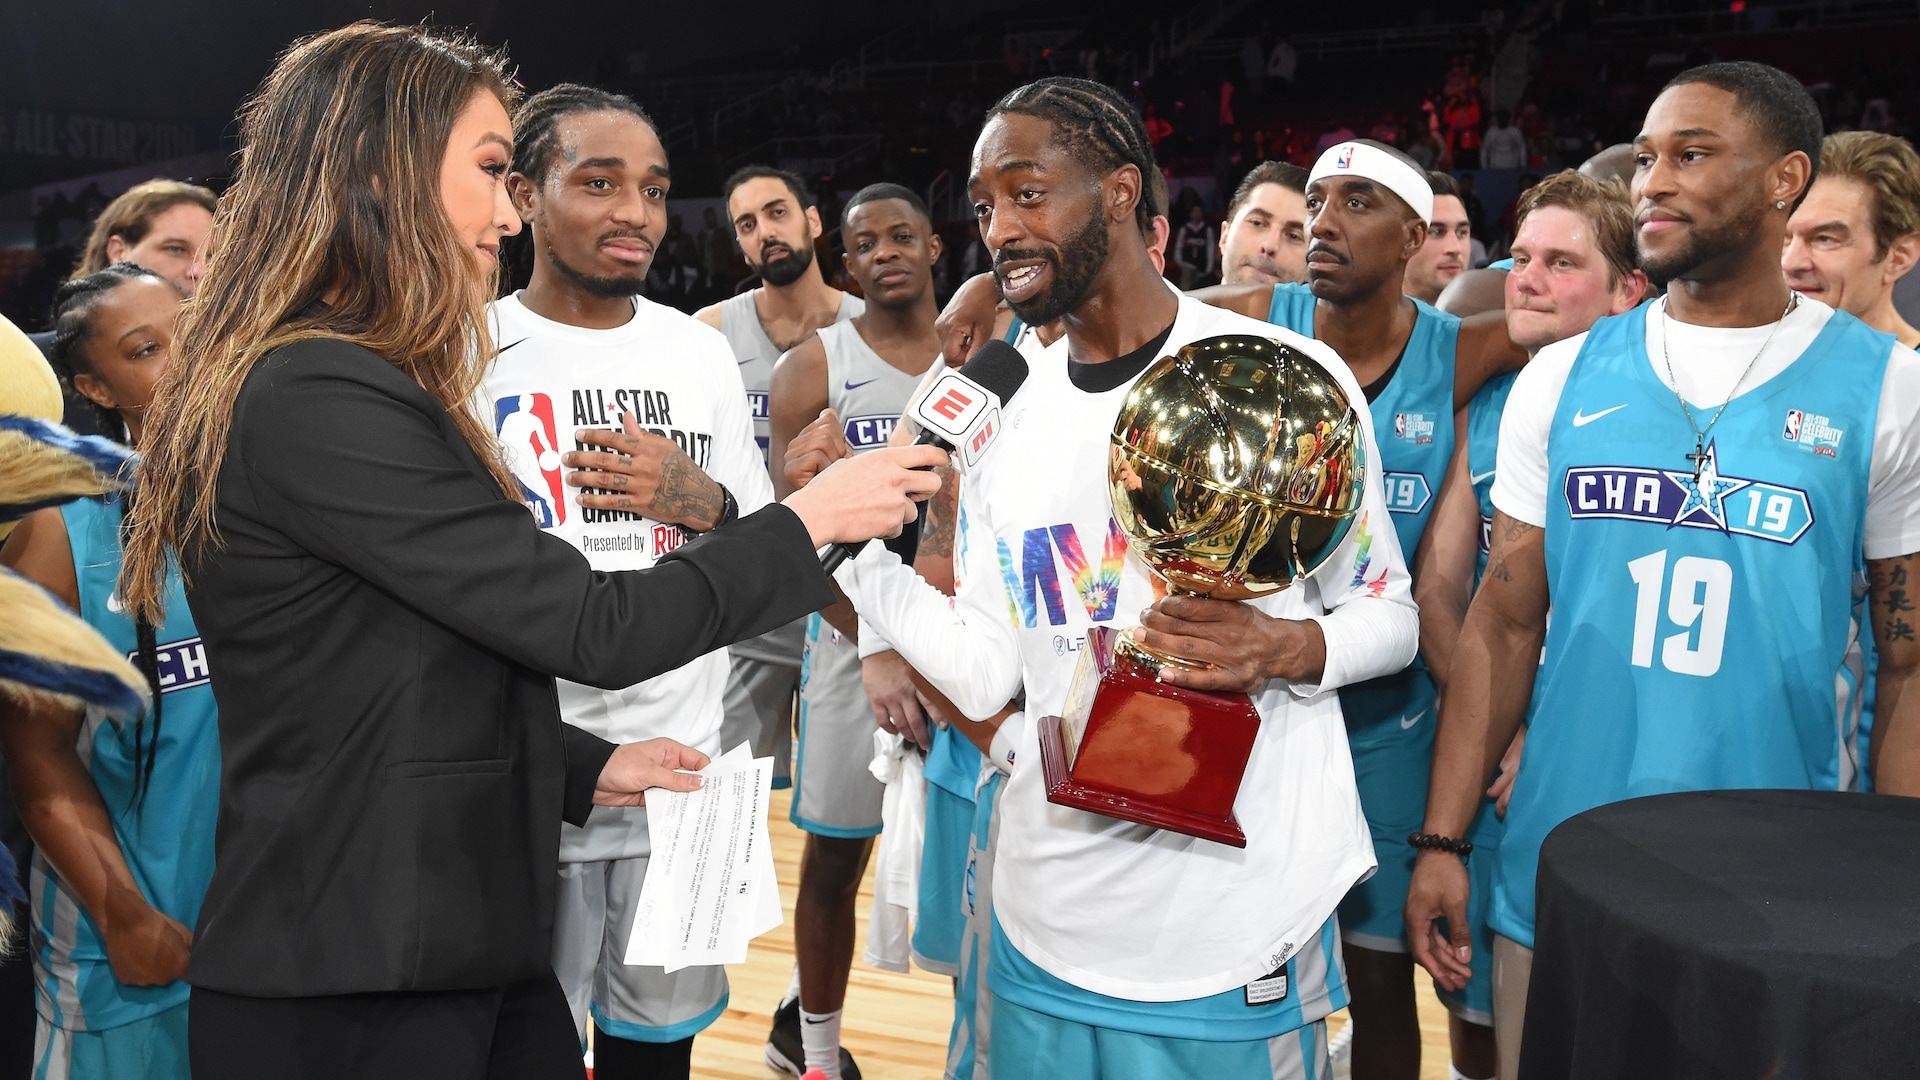 ESPN to exclusively televise 2020 NBA All-Star Celebrity Game presented by Ruffles